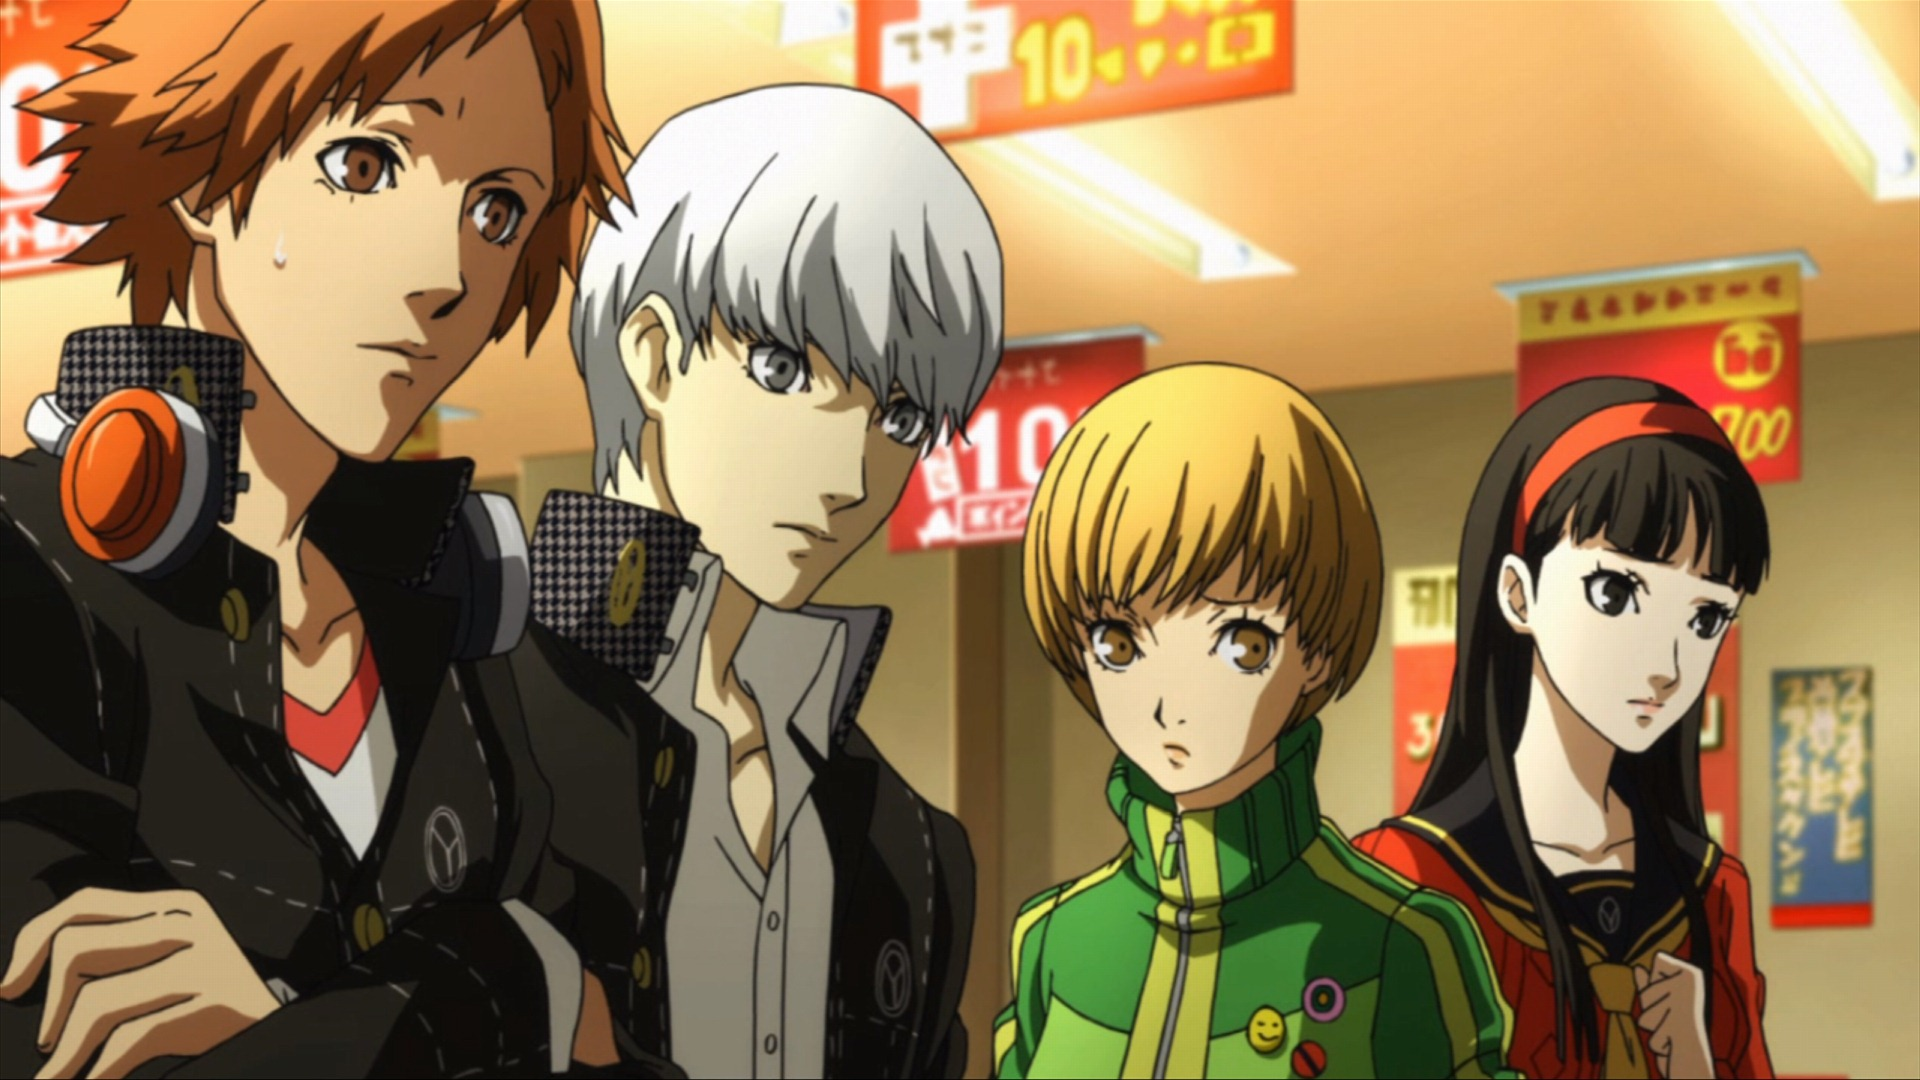 file_6888_persona-4-arena-screens-19_0